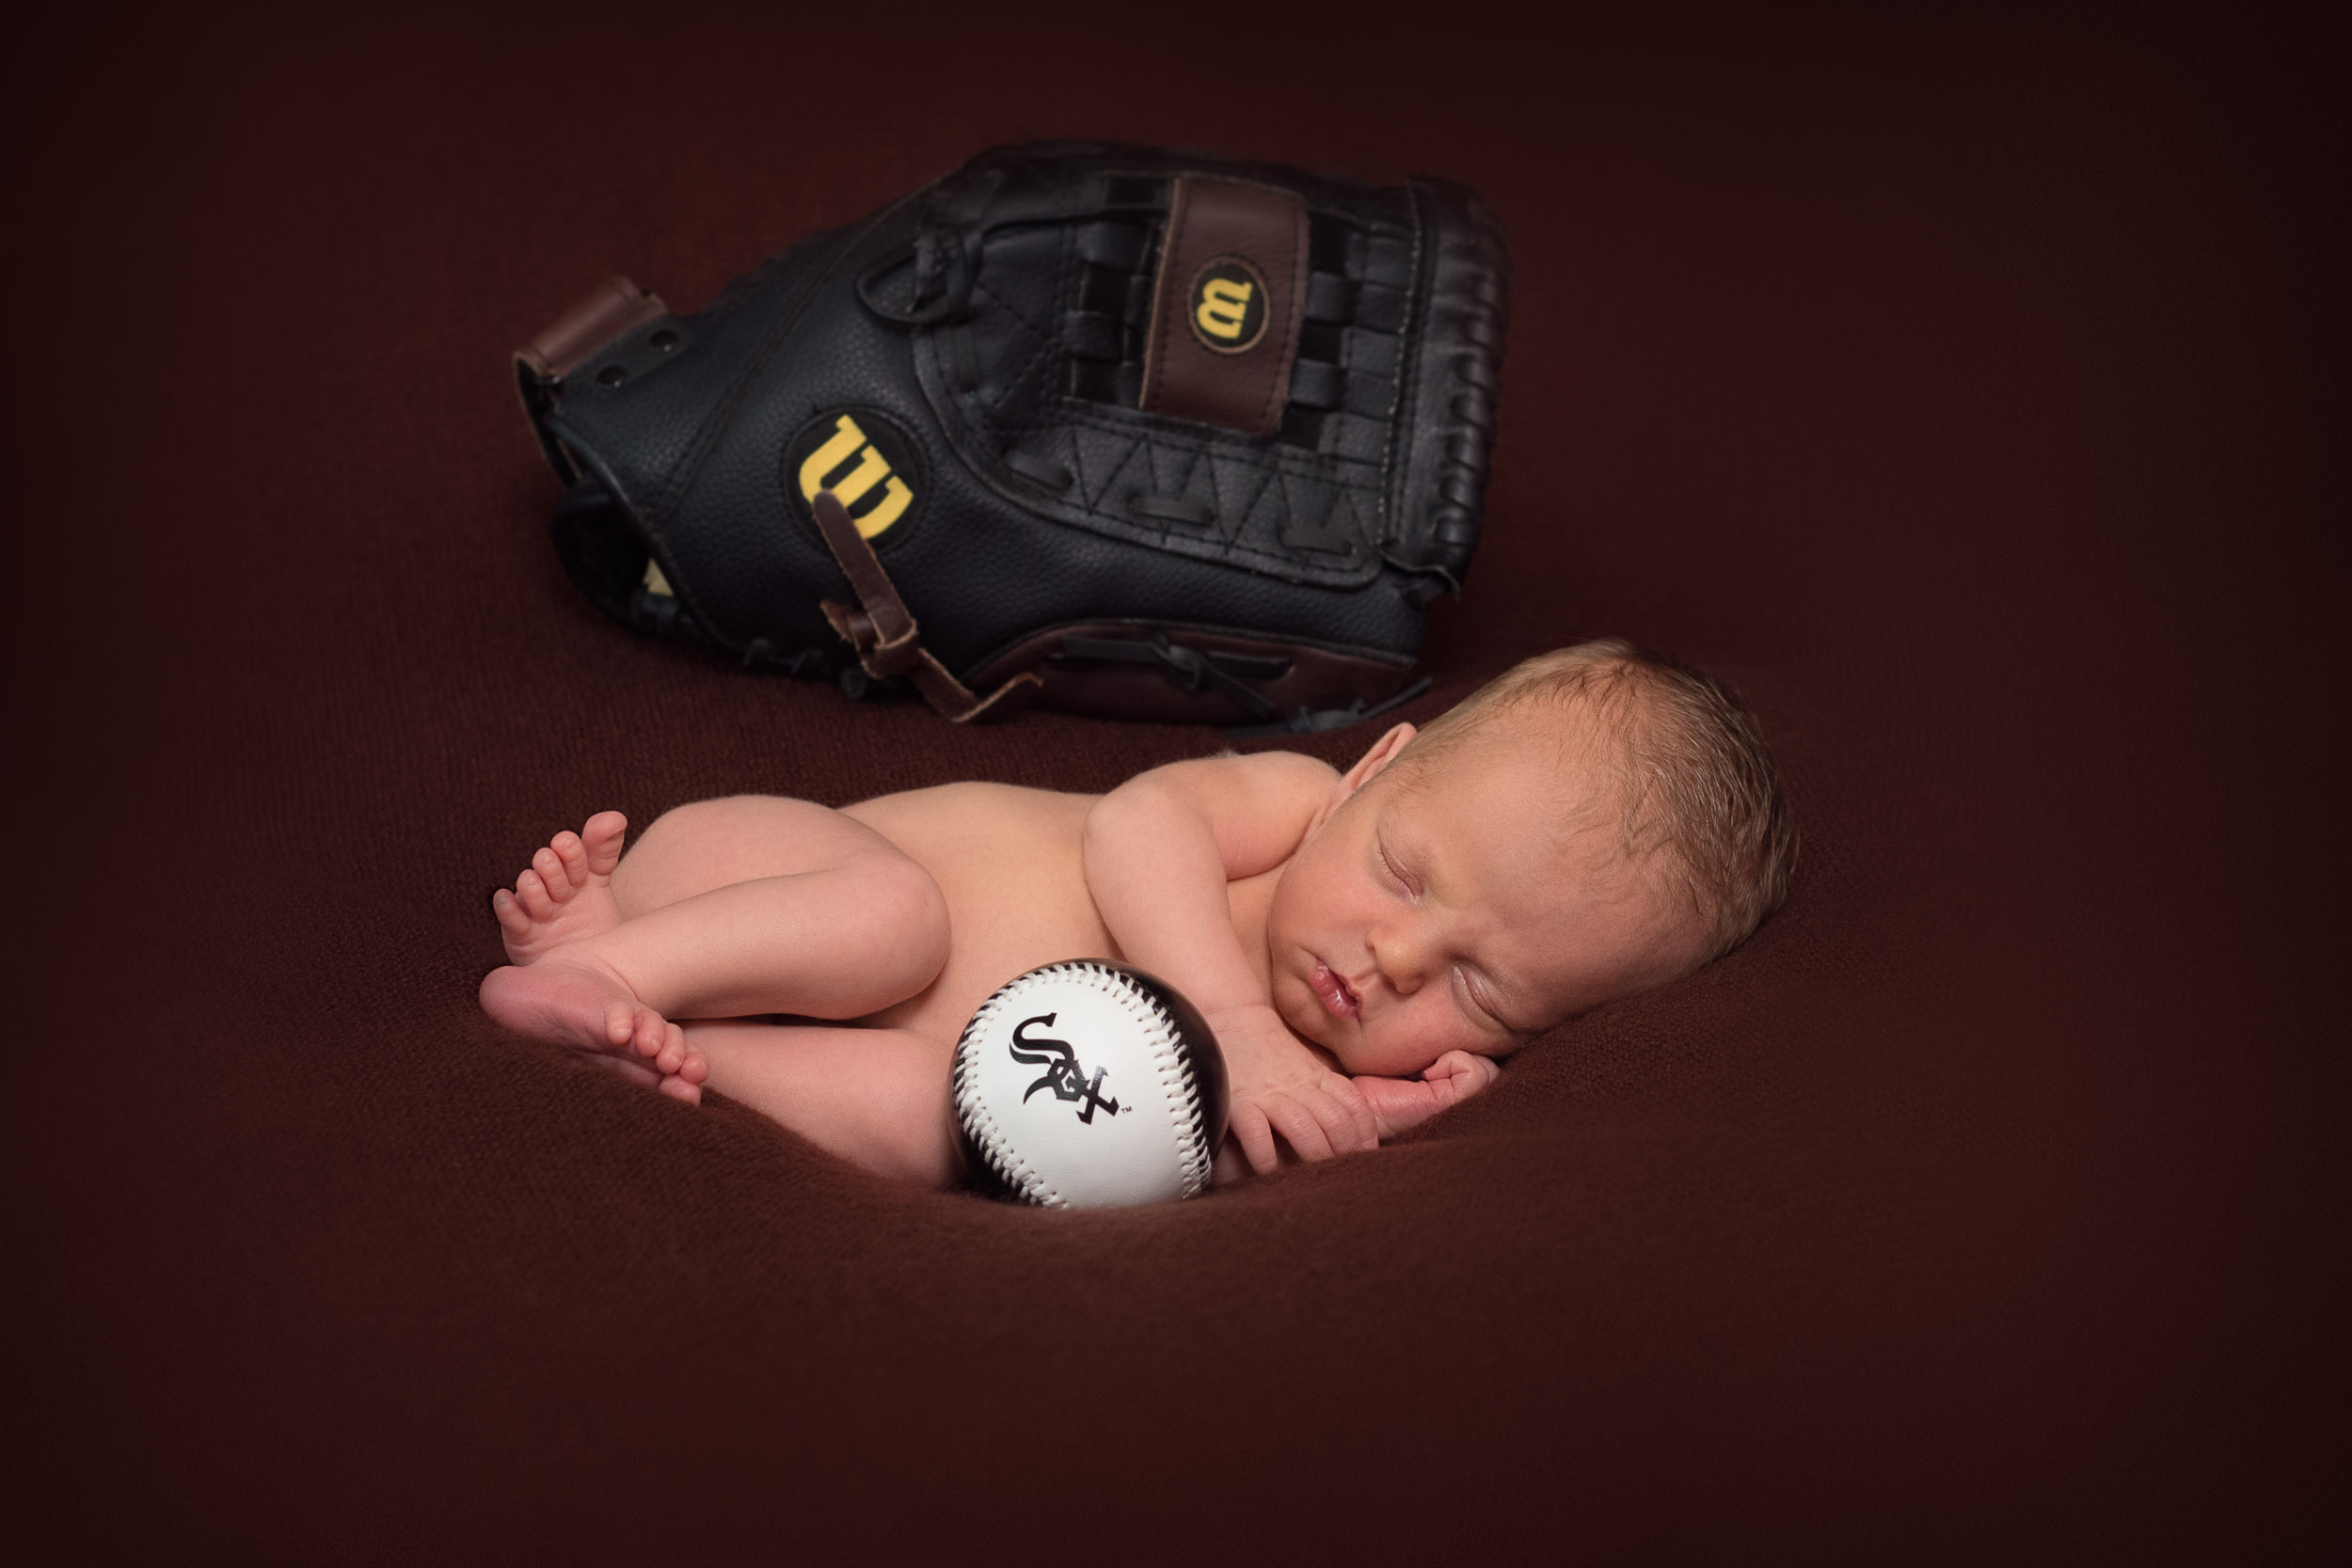 newborn baby with a ball and baseball glove.jpg